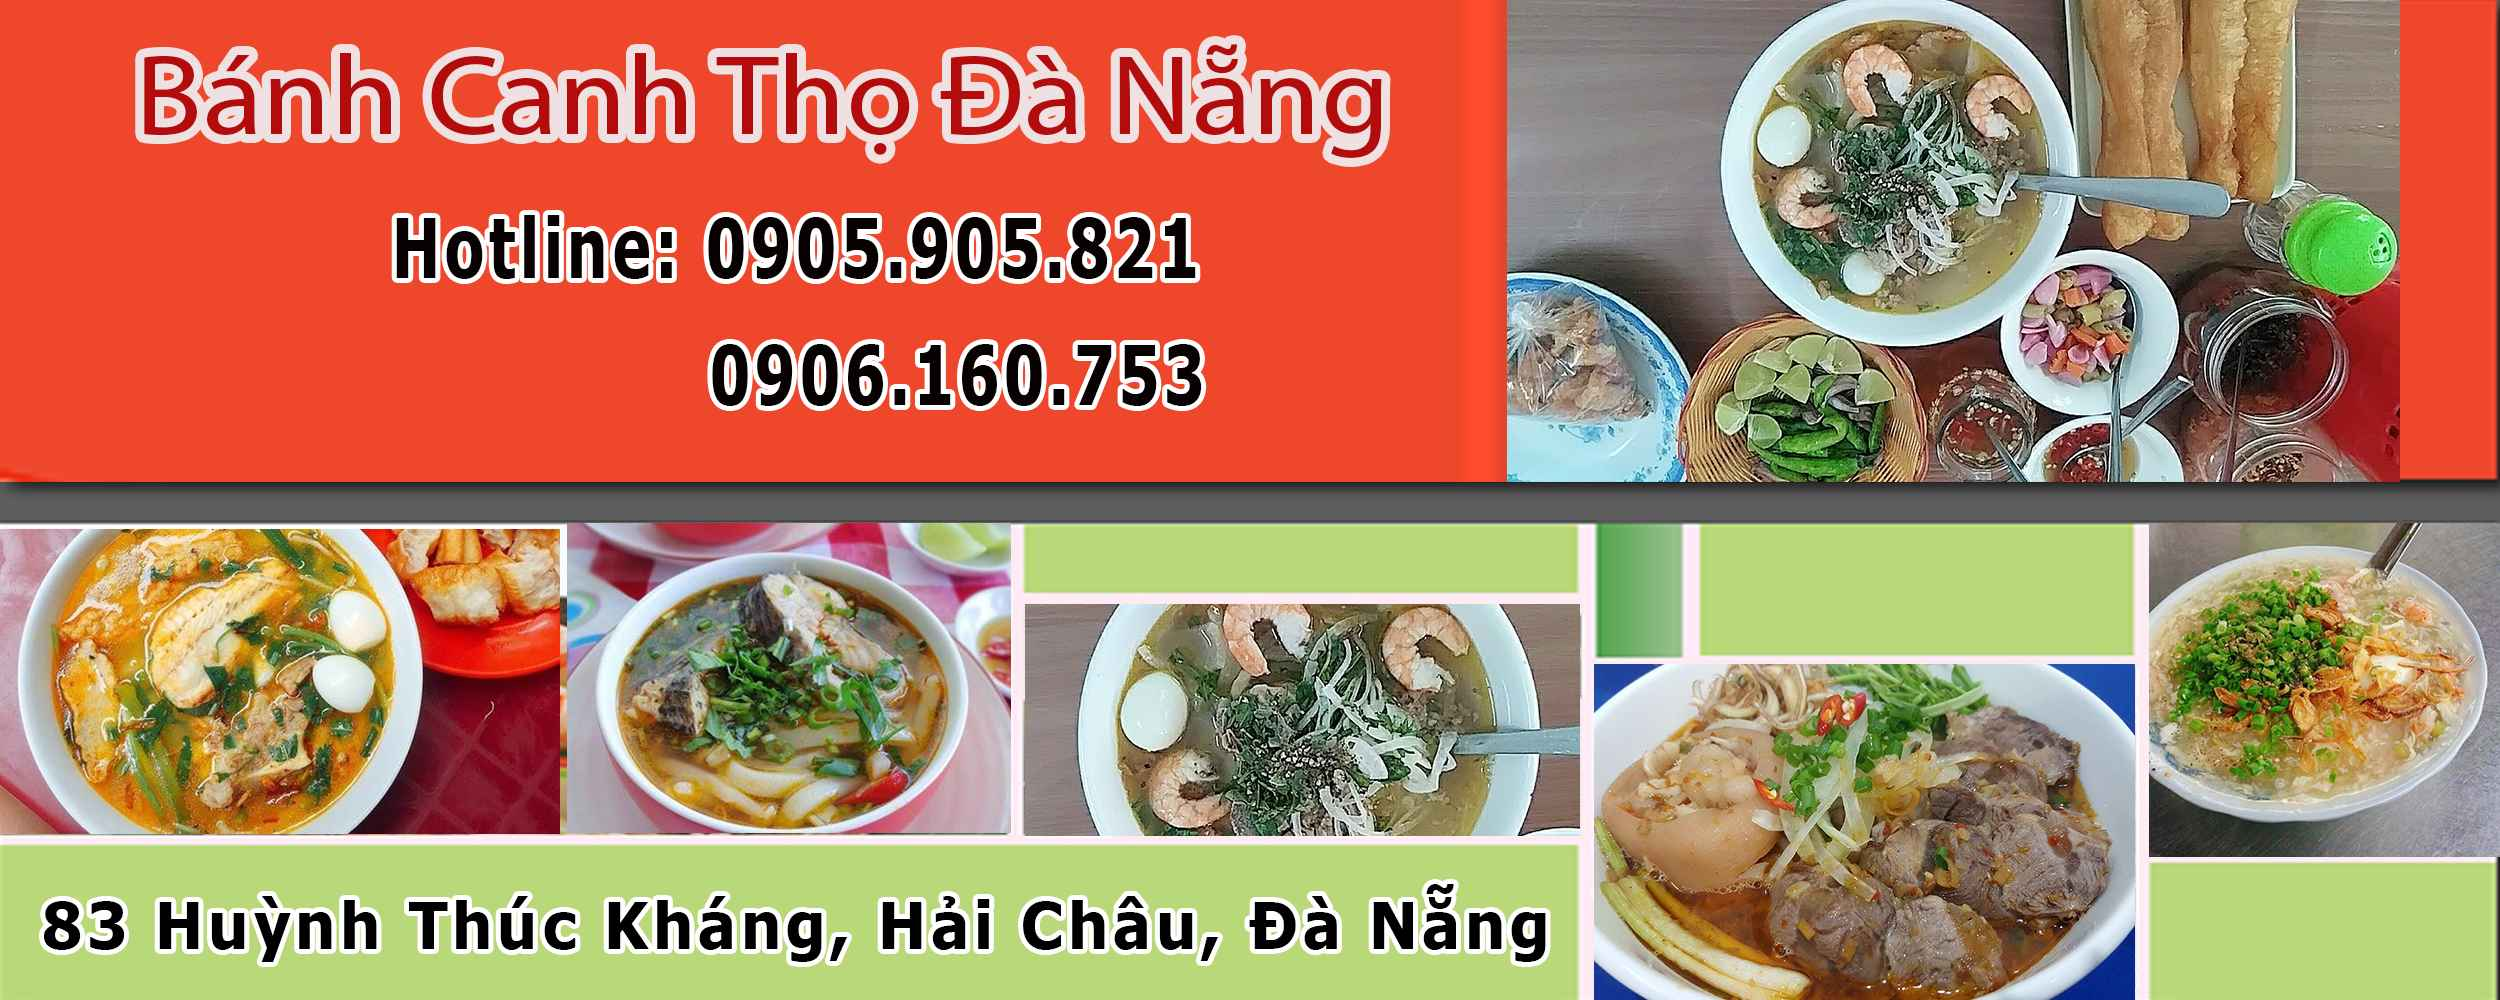 banner-banh-canh-tho